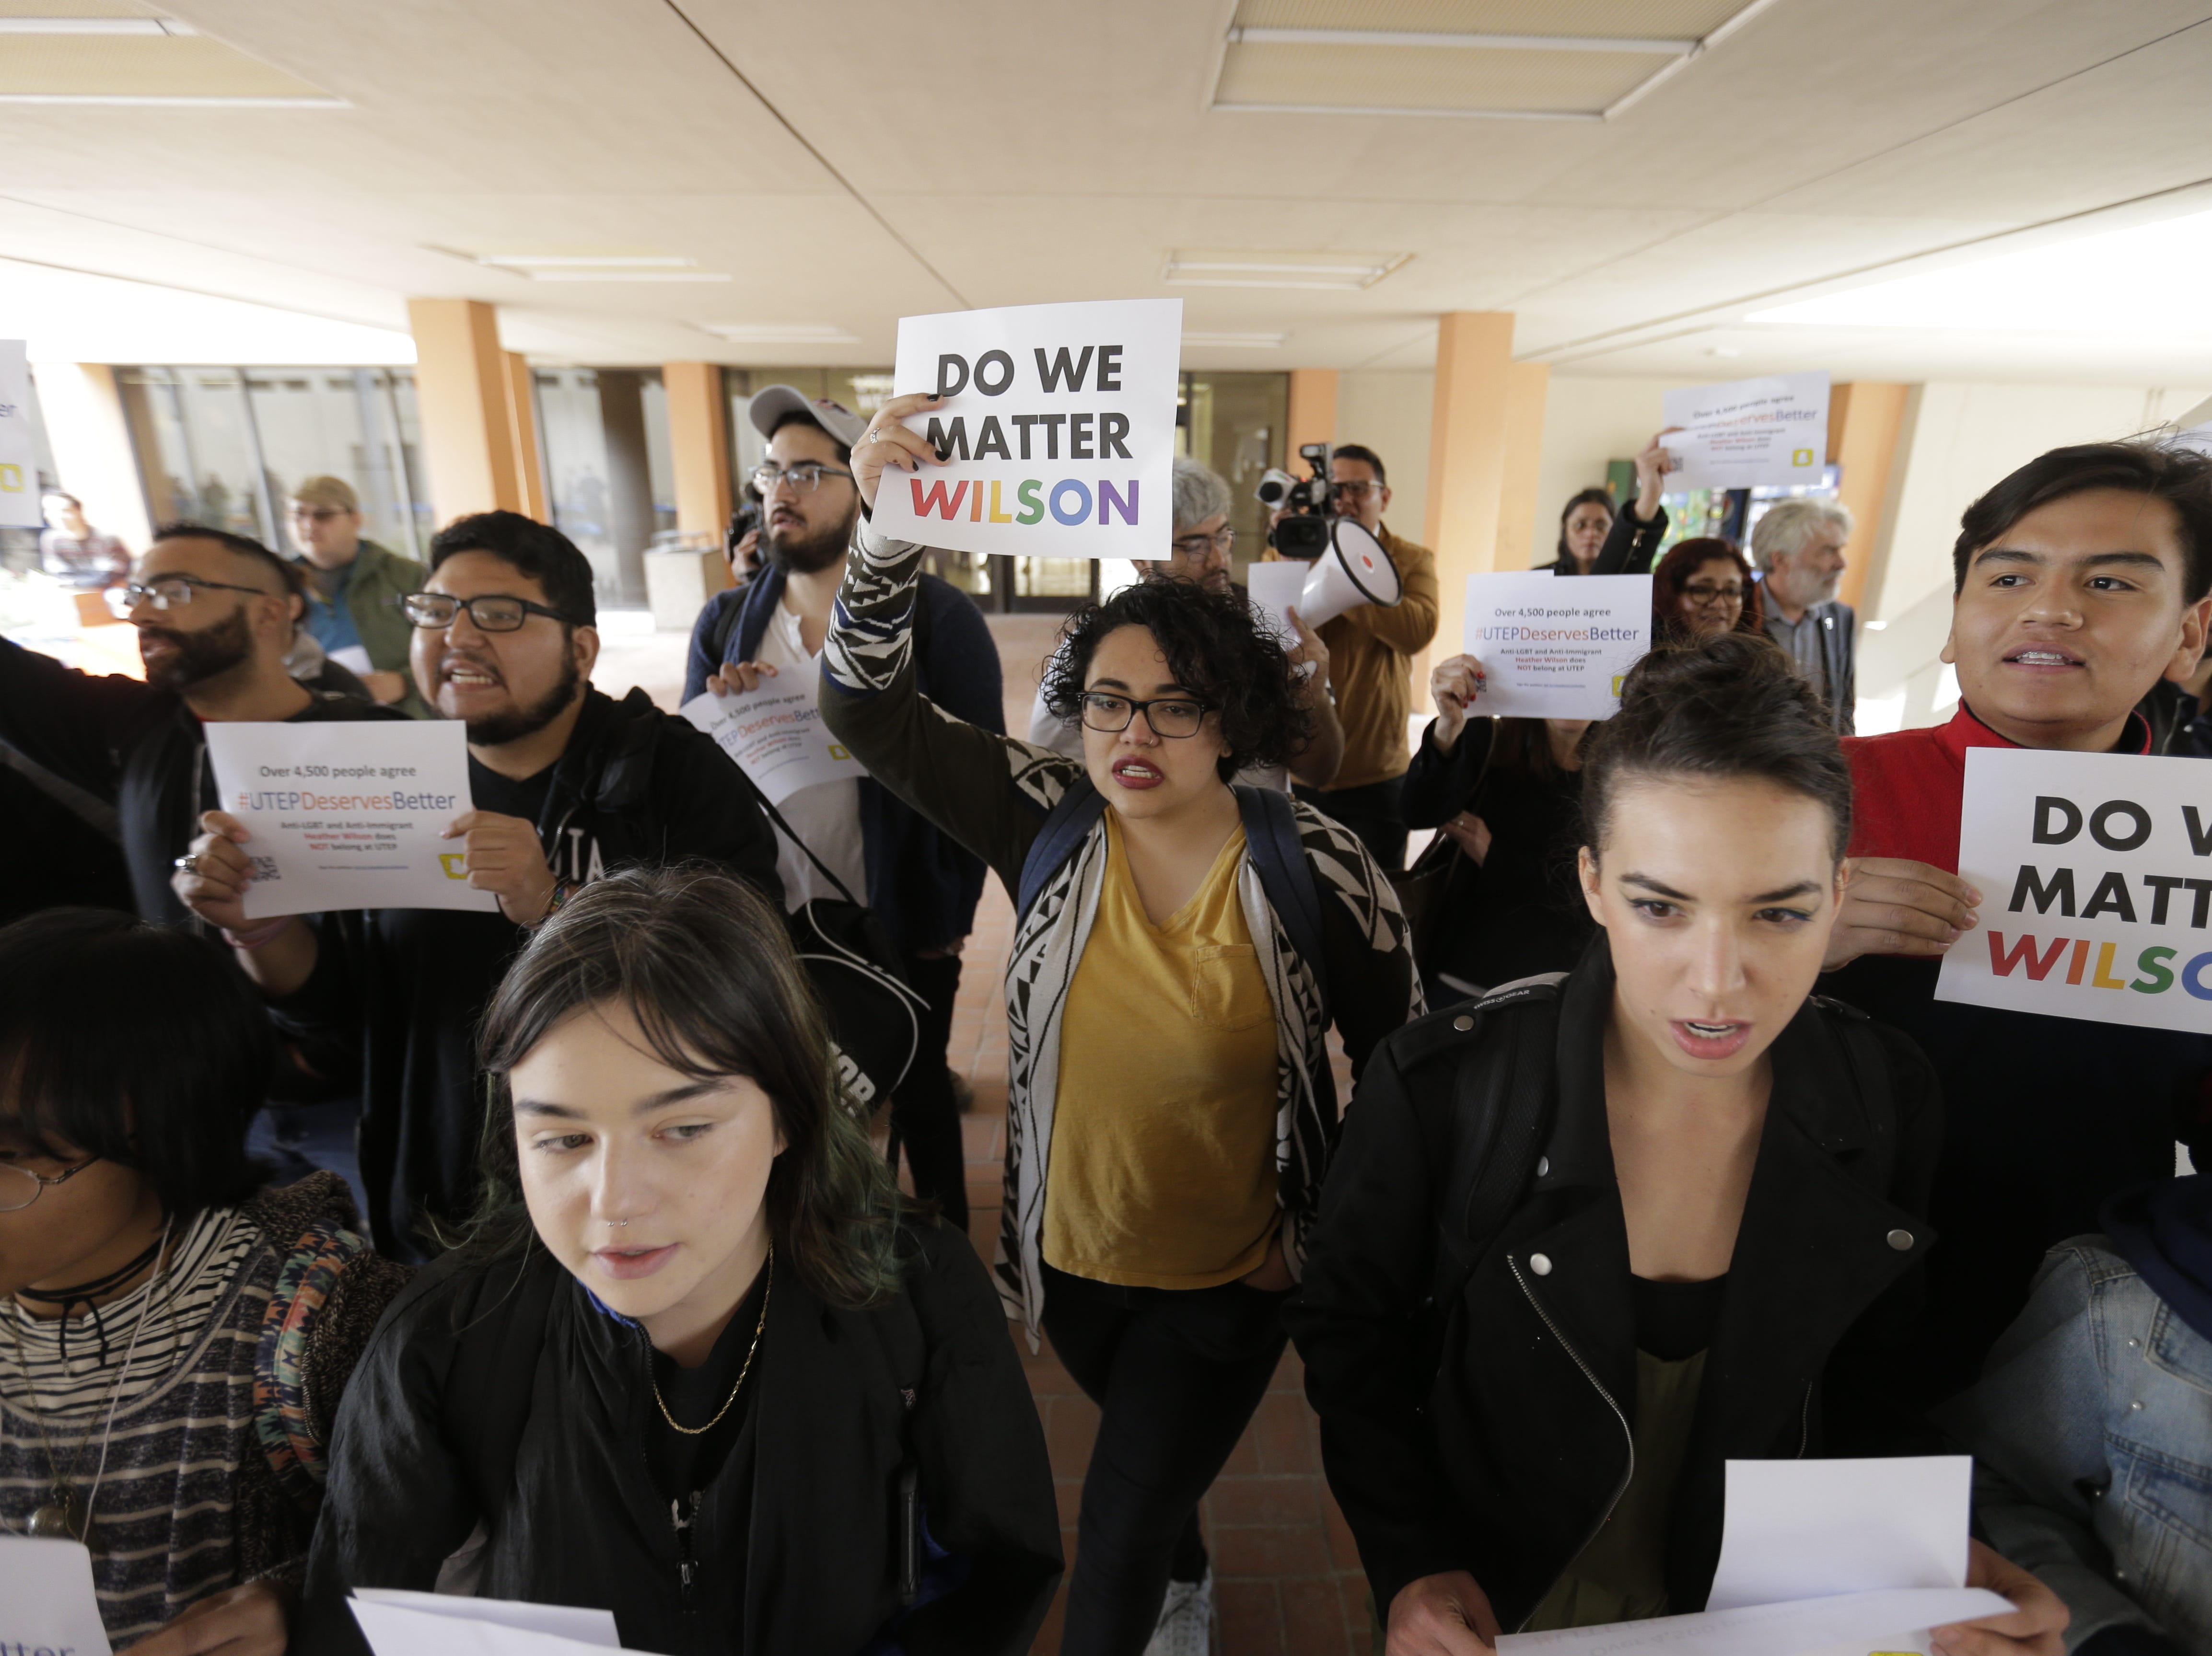 Center: Daisy Marquez and UTEP students protest the appointment of Heather Wilson as the next president of the university.